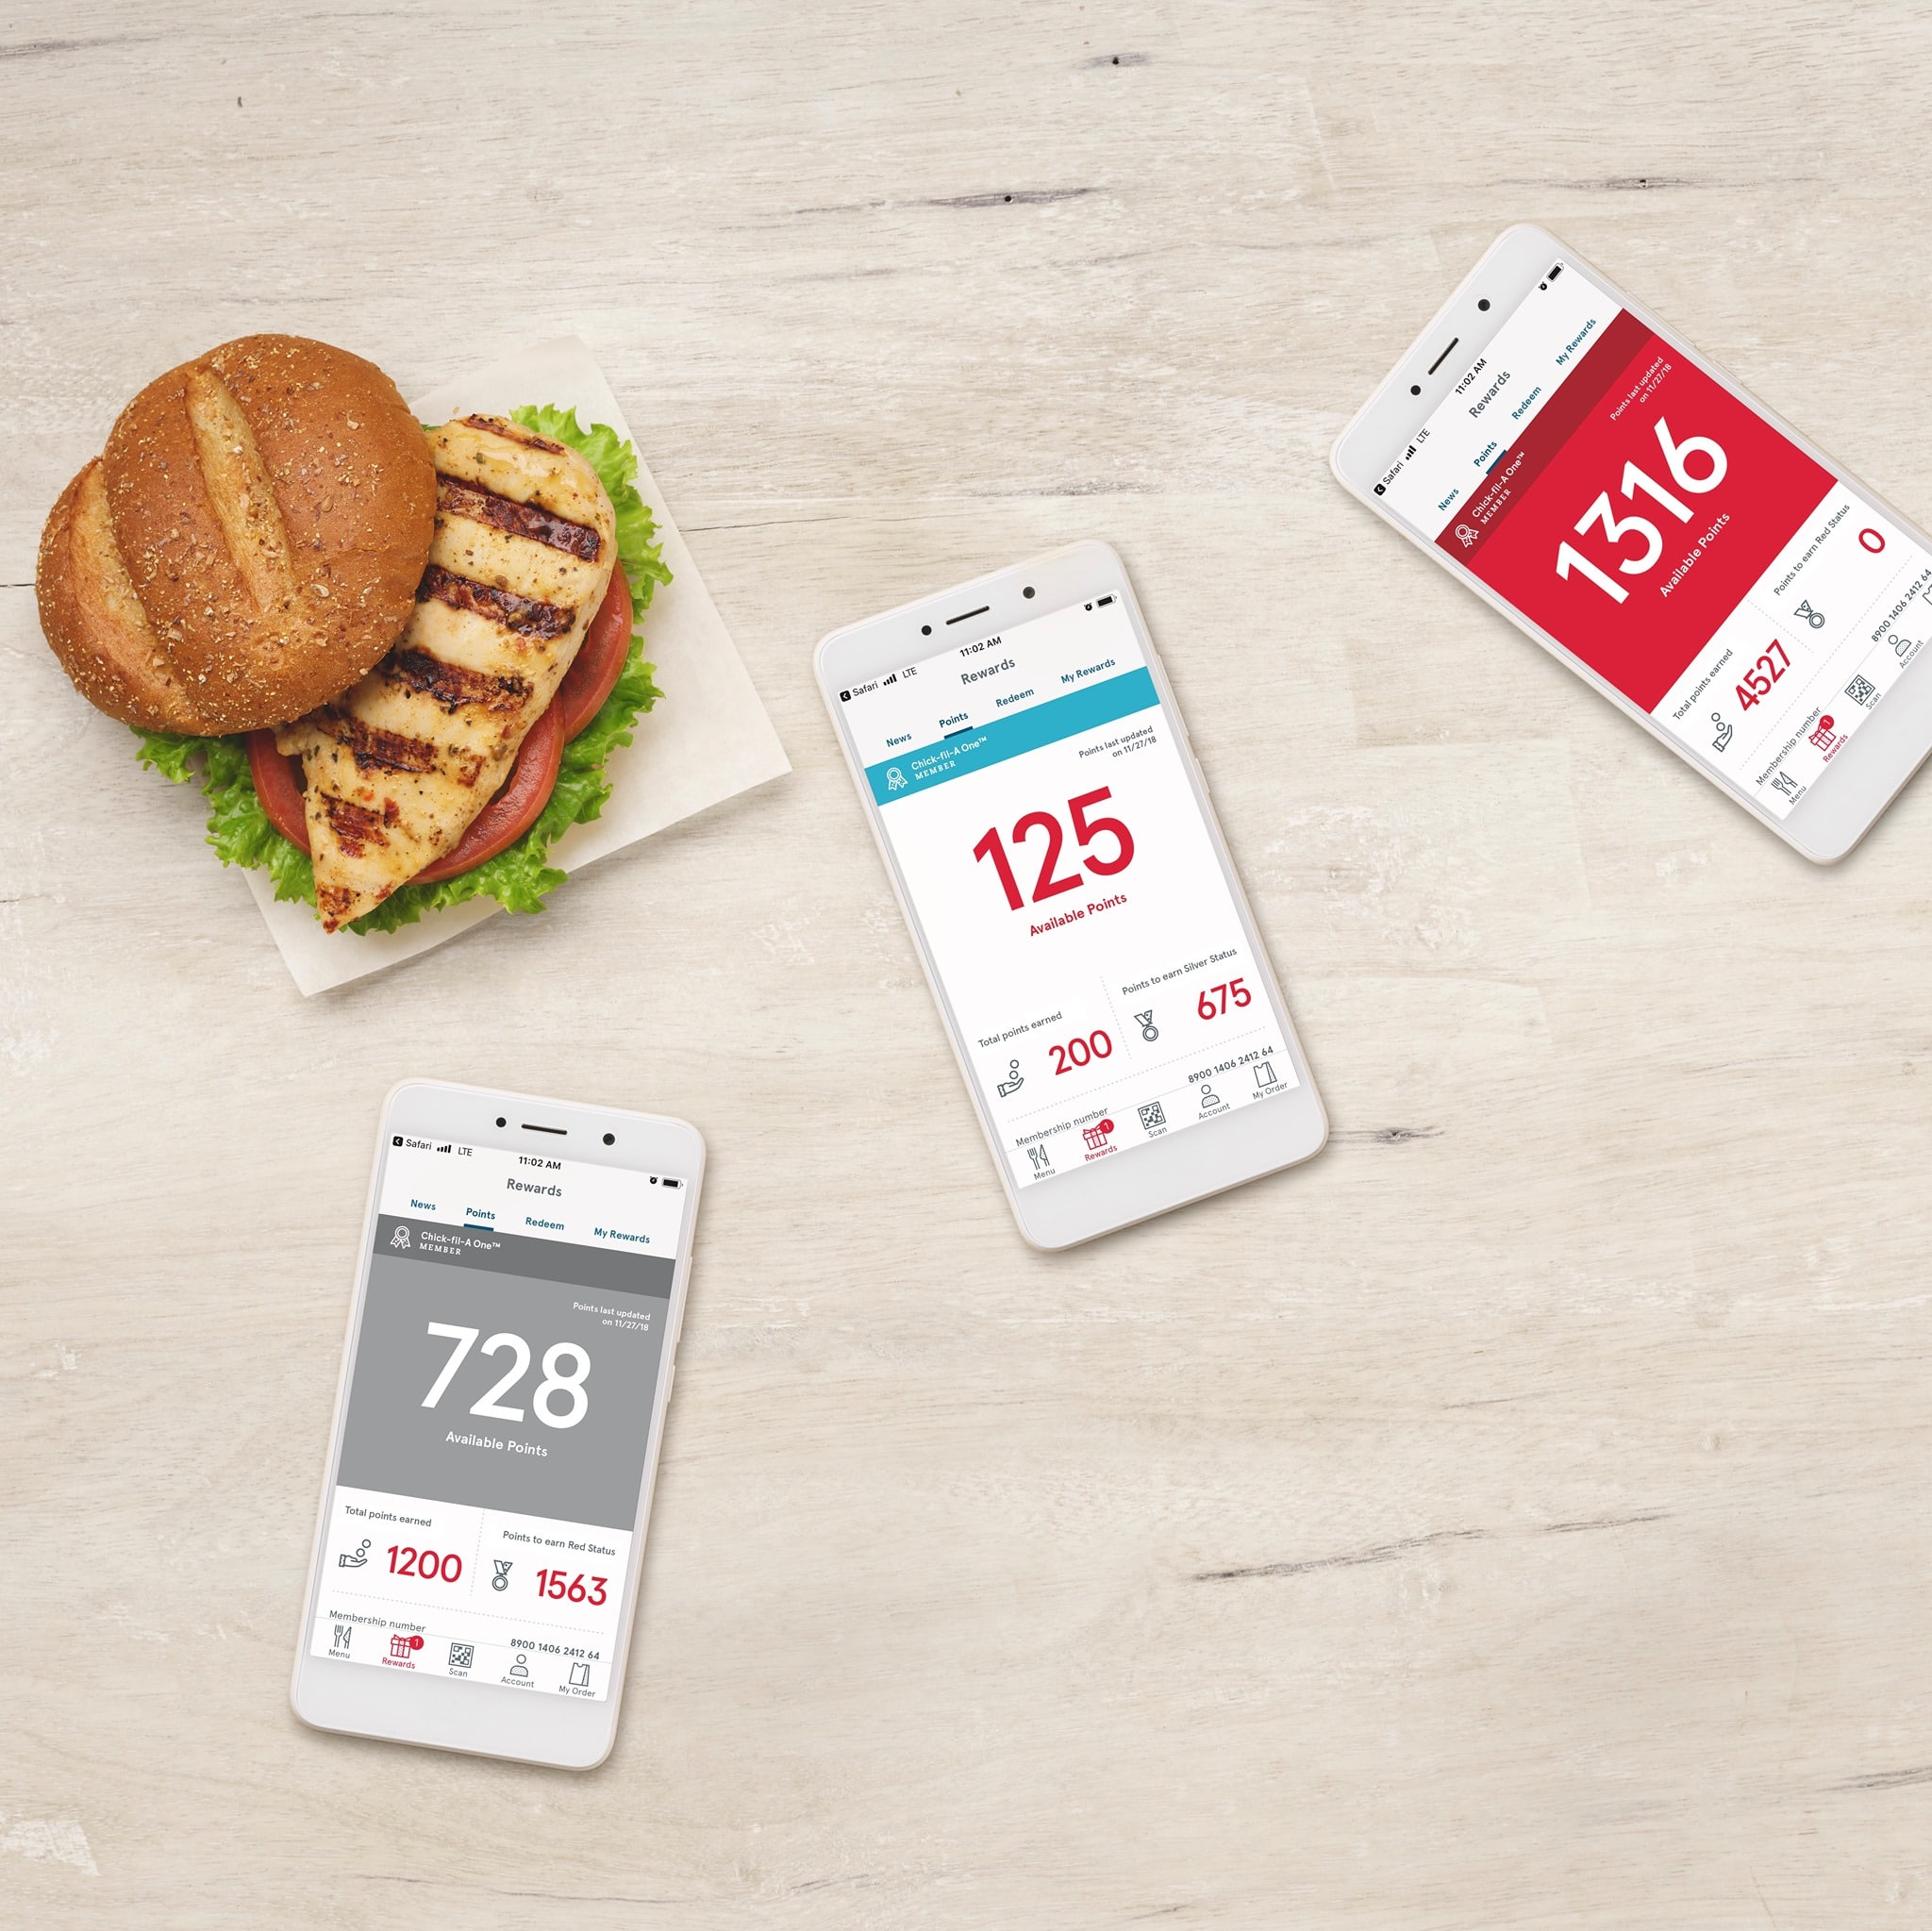 Free Chick-fil-A Rewards App Food